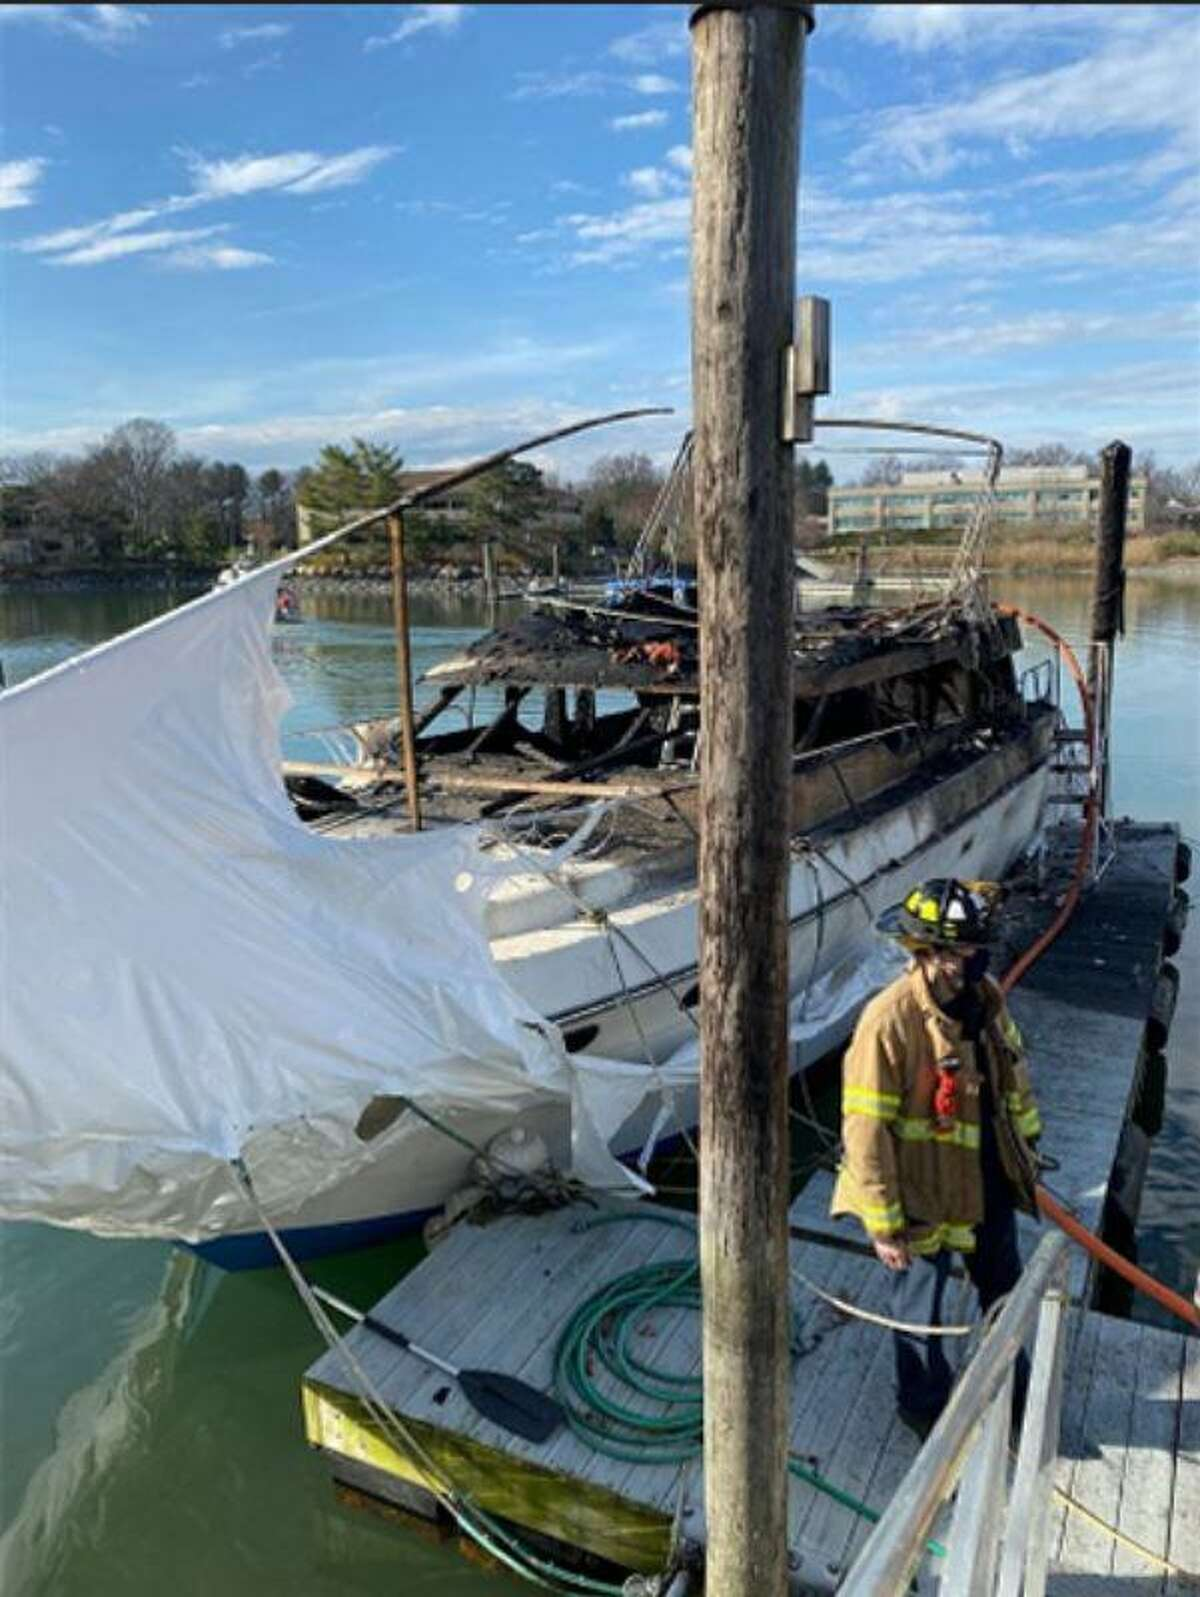 Fire officials respond to a boat fire at Dolphin Cove on Saturday afternoon. The fire on Dolphin Cove Quay was accidentally set when the torch ignited the shrink wrap and the burning plastic dripped onto the boat, setting it ablaze, Seeley said. Workers told firefighters that they had just finished the left side of the boat, and were applying heat to the right side of the boat, from a small boat, when they saw flames and smoke coming from the left side, Deputy Fire Chief Matt Palmer said. Firefighters arrived within three of the call and quickly extinguished the blaz before the 1988 vessel, manufactured by Silverton, could sink, Palmer said. As a result of the efforts of thee 22 responding firefighters, Palmer said there was no environmental damage to the cove. No injuries were reported.